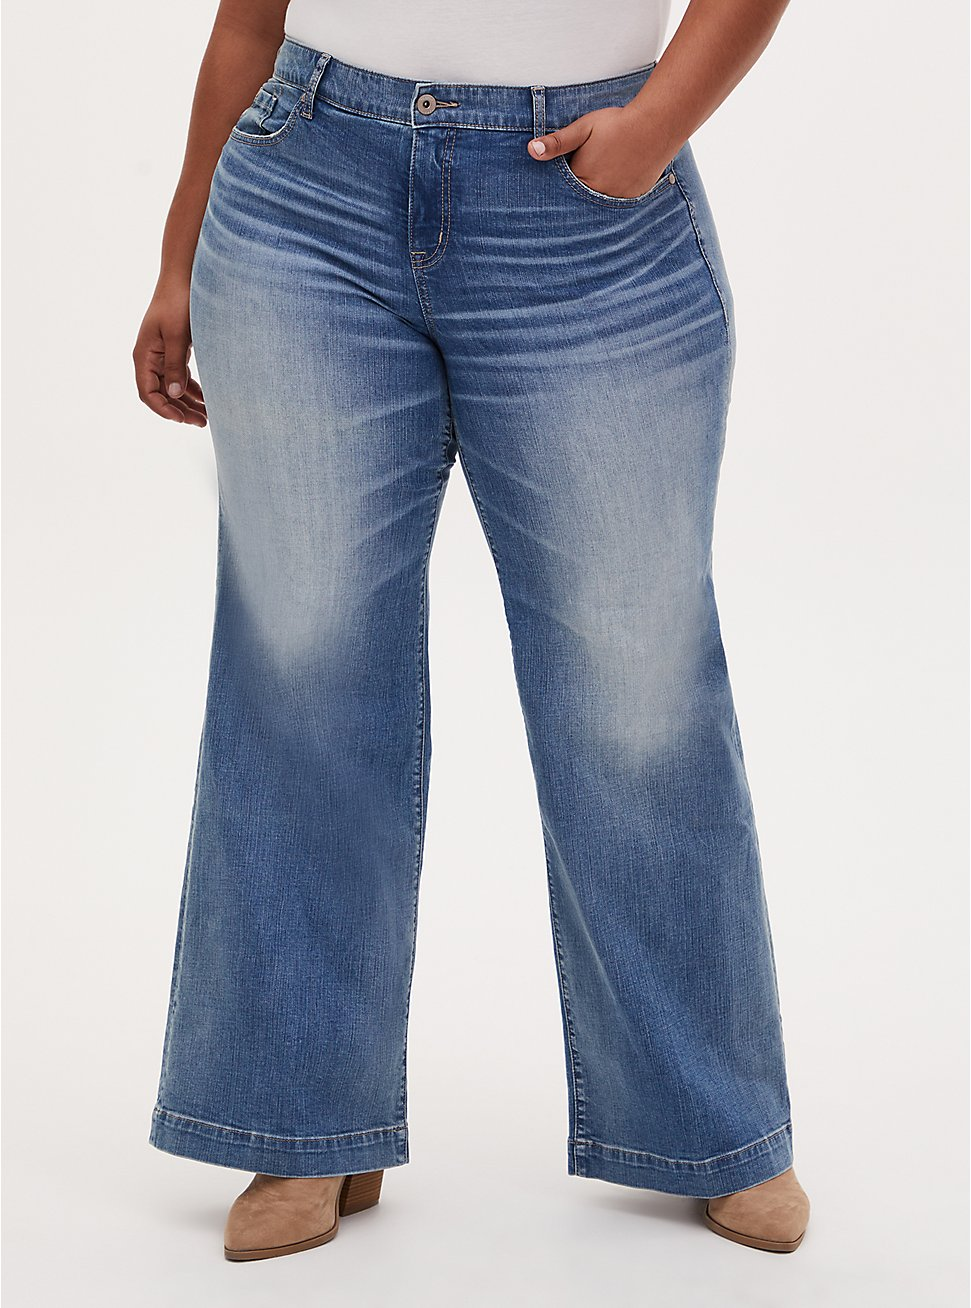 High Rise Wide Leg Jean - Vintage Stretch Light Wash , KARMA, hi-res